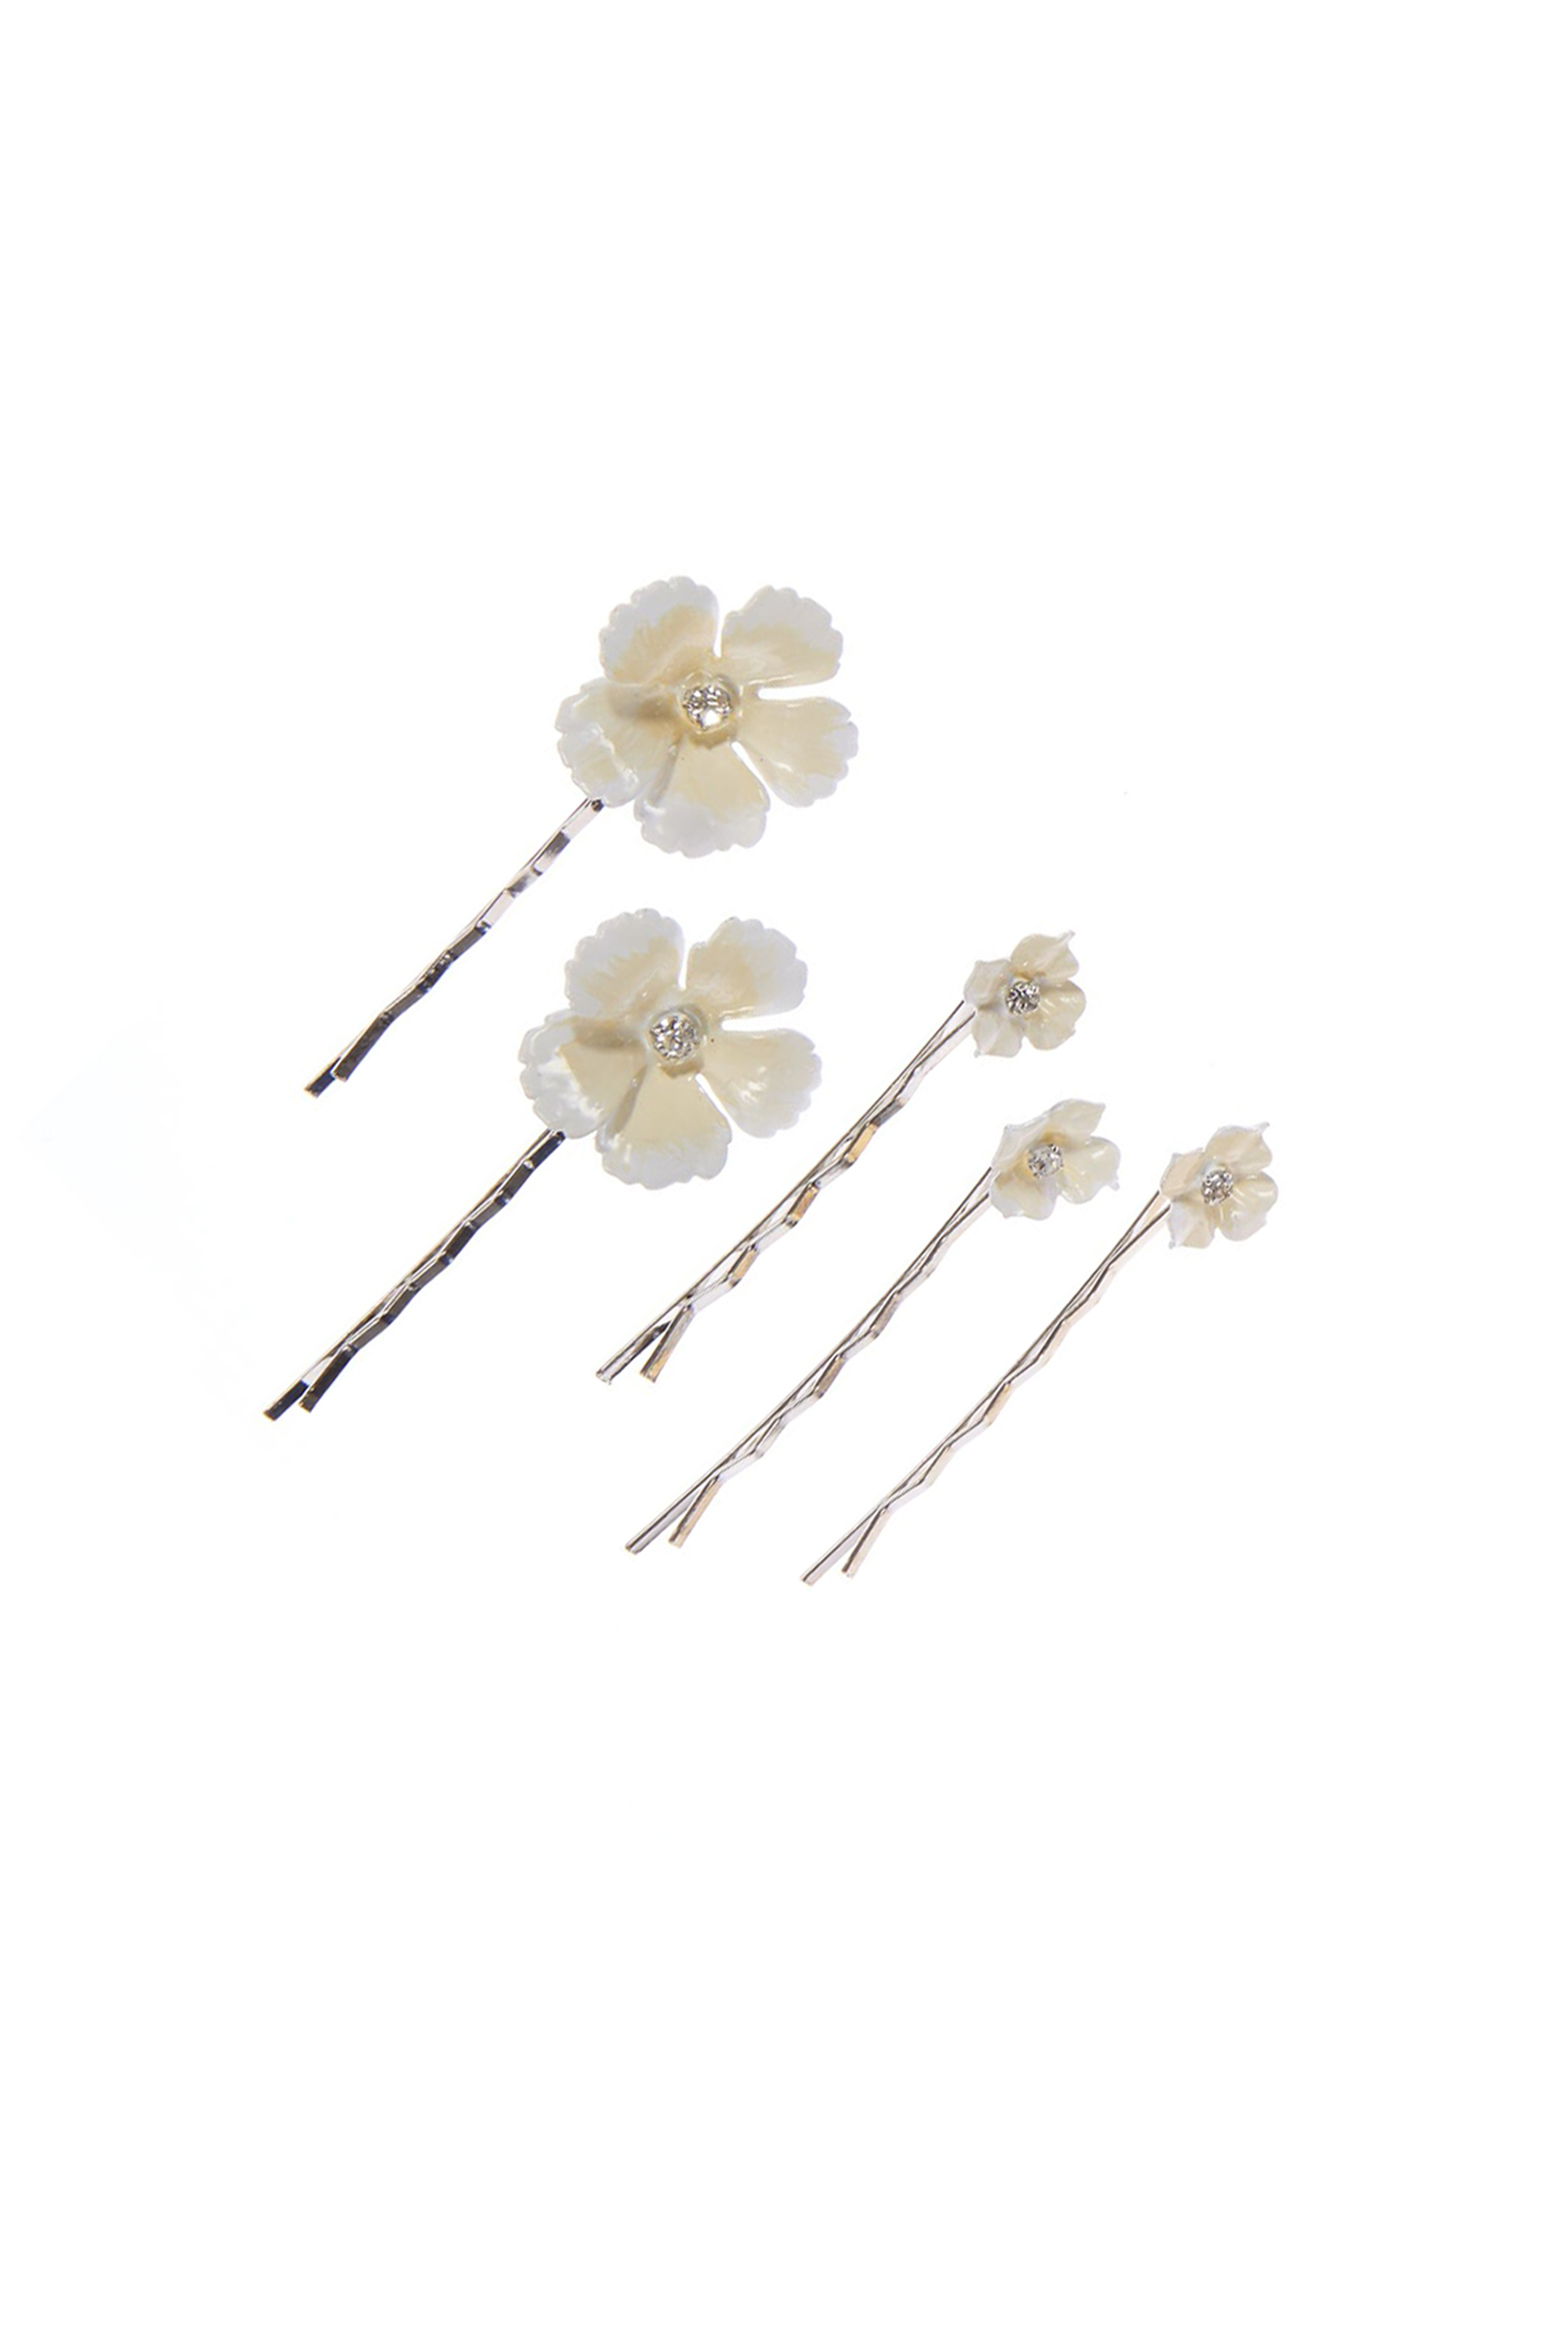 [RENTAL][Juliette Bobby Pin Snow]by JENNIFER BEHR(参考価格¥25,740)